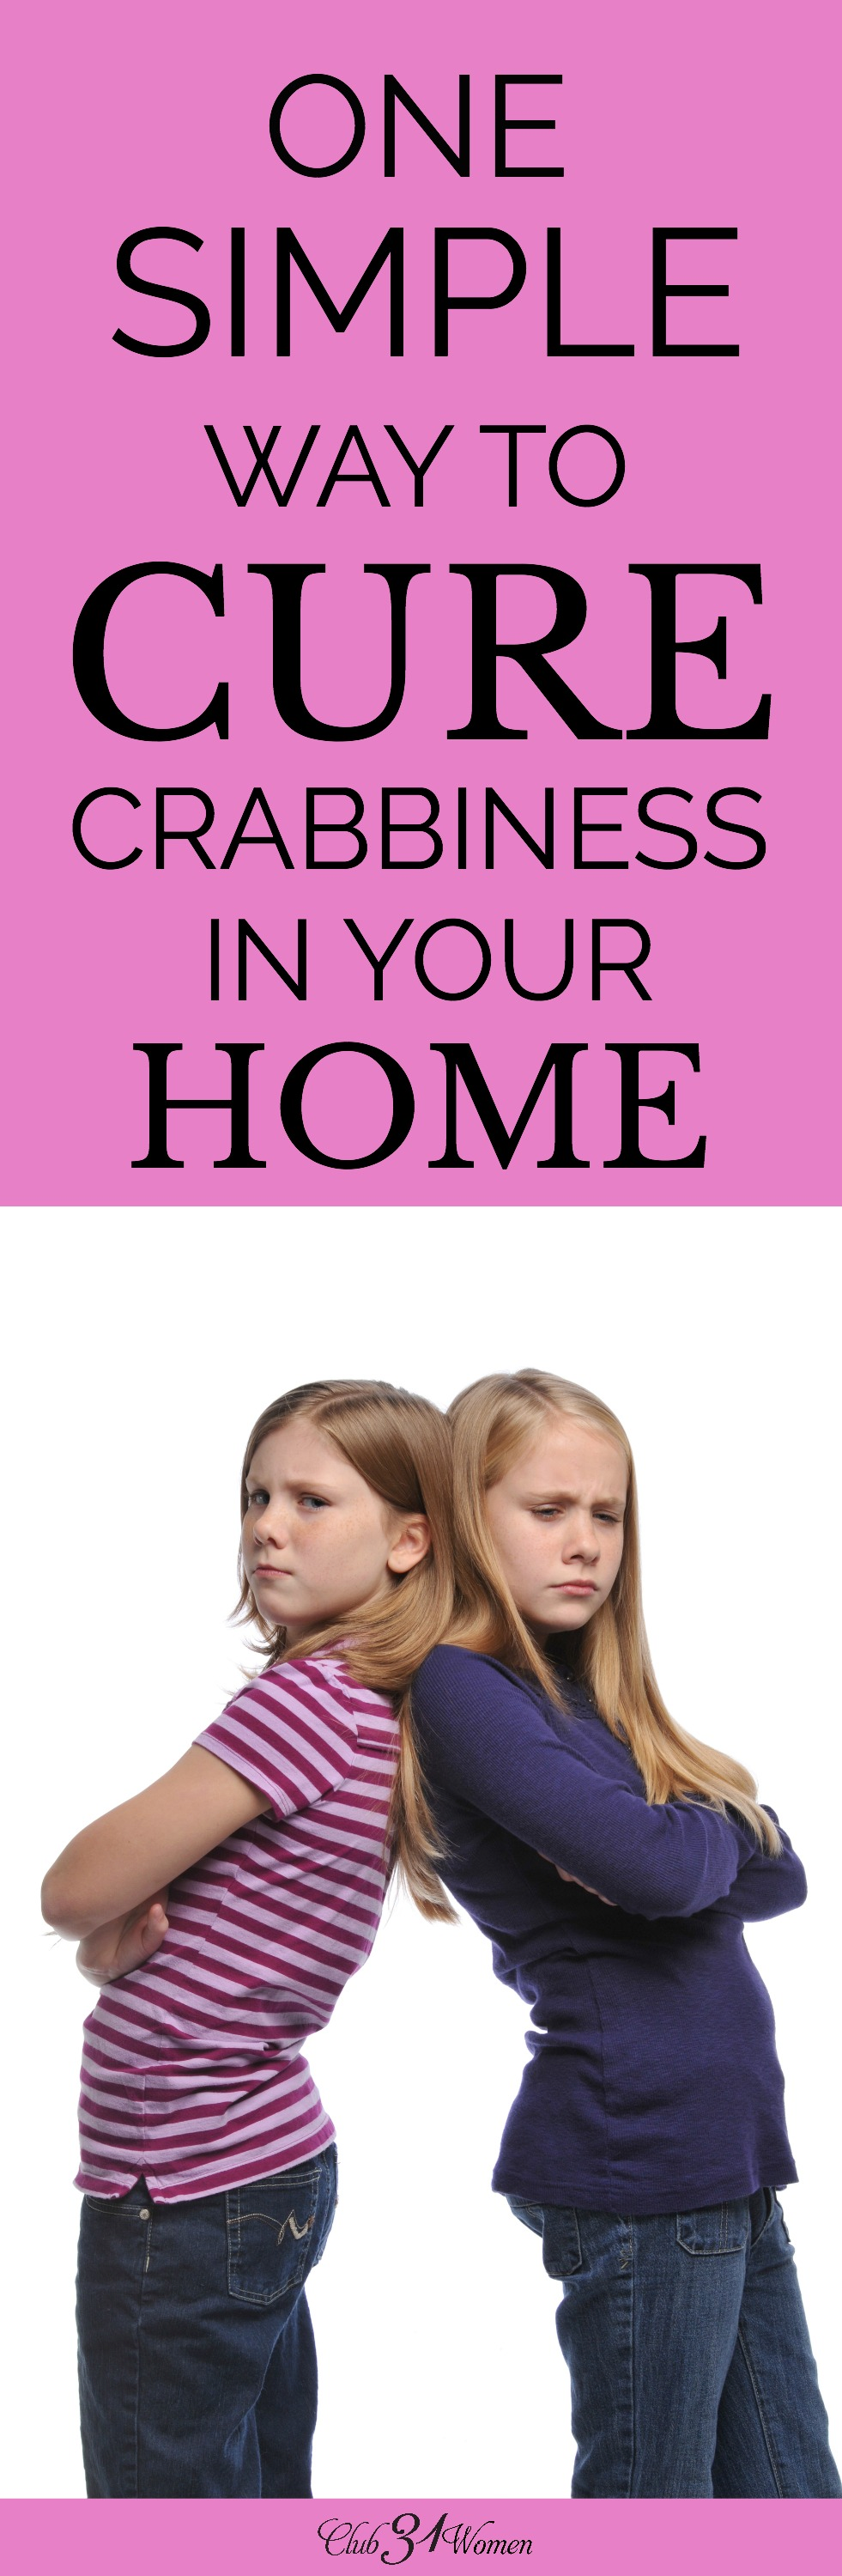 Does it seem like everyone in your household is crabby and stress is at a premium? Today's culture is full of challenges. How can we cure the crabbiness? via @Club31Women